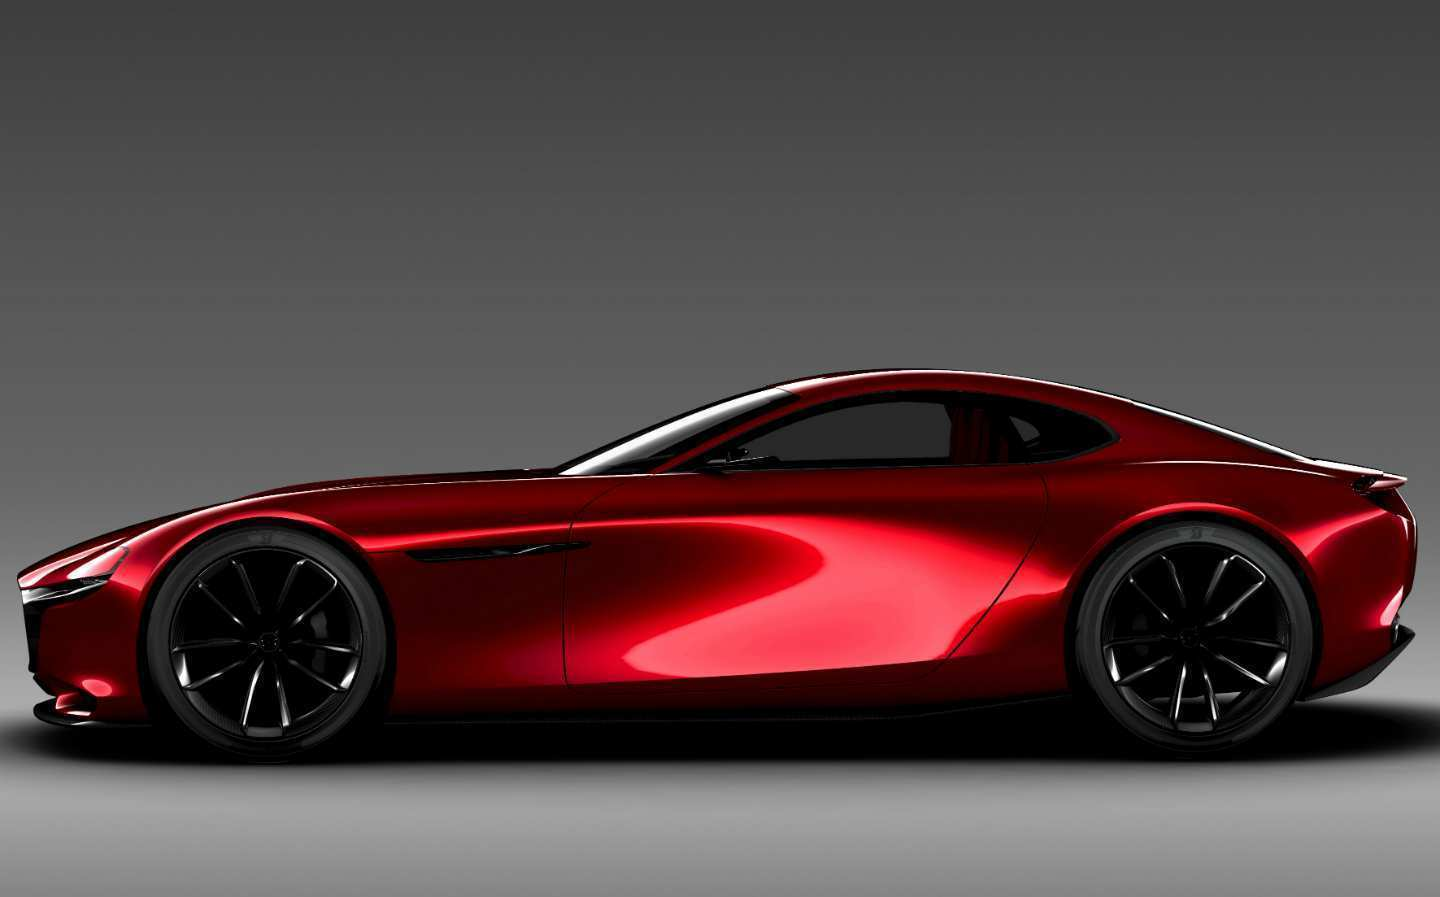 61 All New Mazda Rx7 2020 Specs and Review for Mazda Rx7 2020